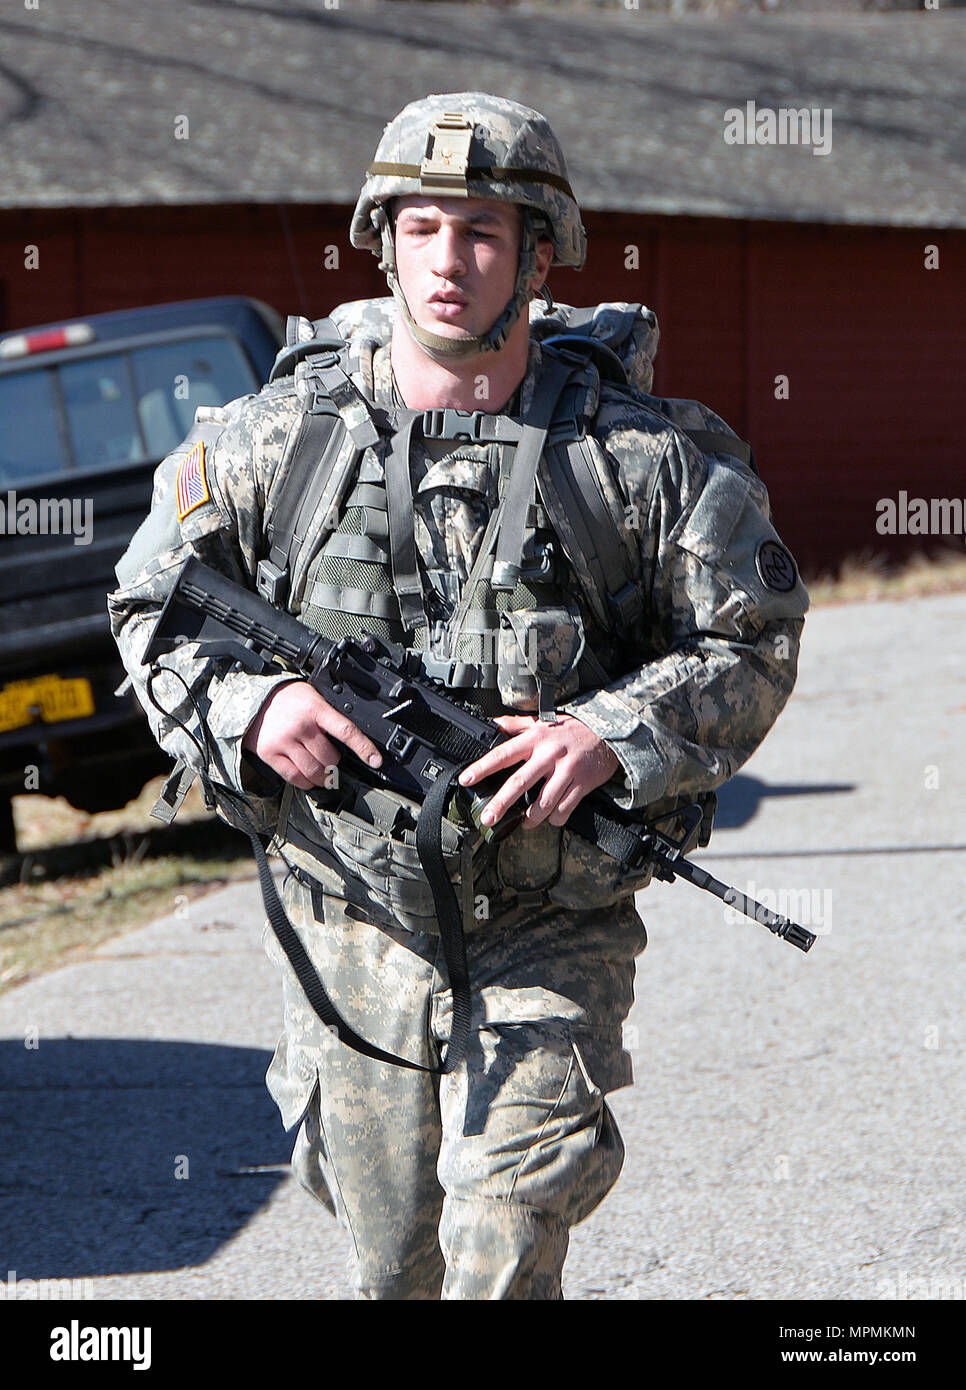 U.S. Army Sgt. Mitchell Cooper, Co. D, 2nd Battalion 108th Infantry completes a grueling 12-mile forced march to complete the New York Army National Guard Best Warrior Competition at Camp Smith Training Site April 2, 2017. The Best Warrior competitors represent each of New York's brigades after winning competitions at the company, battalion, and brigade levels. At the state level they are tested on their physical fitness, military knowledge, endurance, marksmanship, and land navigation skills. Cooper won the Soldier of the Year will advance to compete at the regional level later this year. (U. - Stock Image